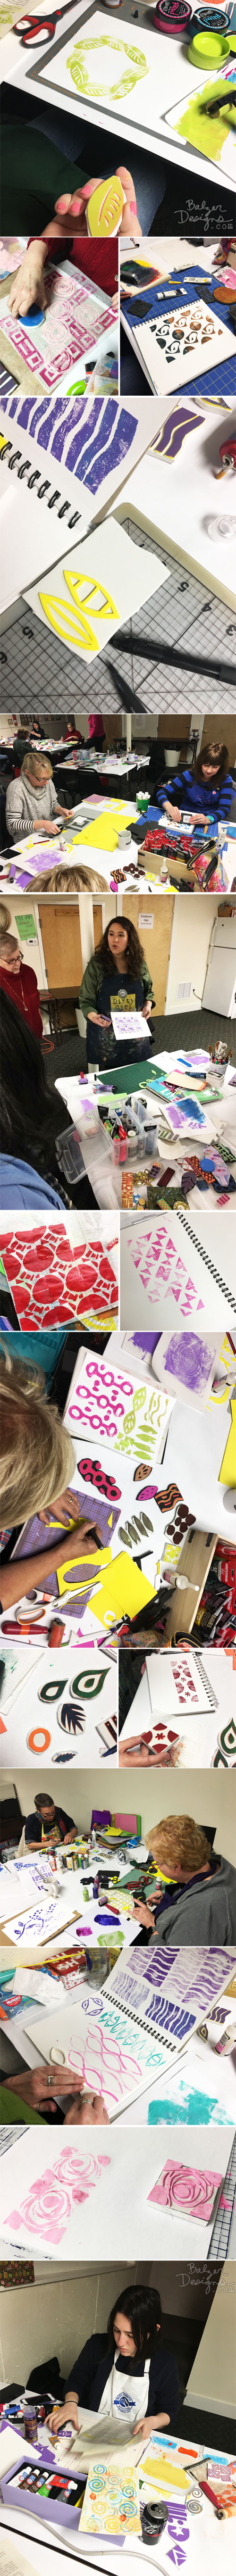 From the Balzer Designs Blog: Three Classes at Papercraft Clubhouse